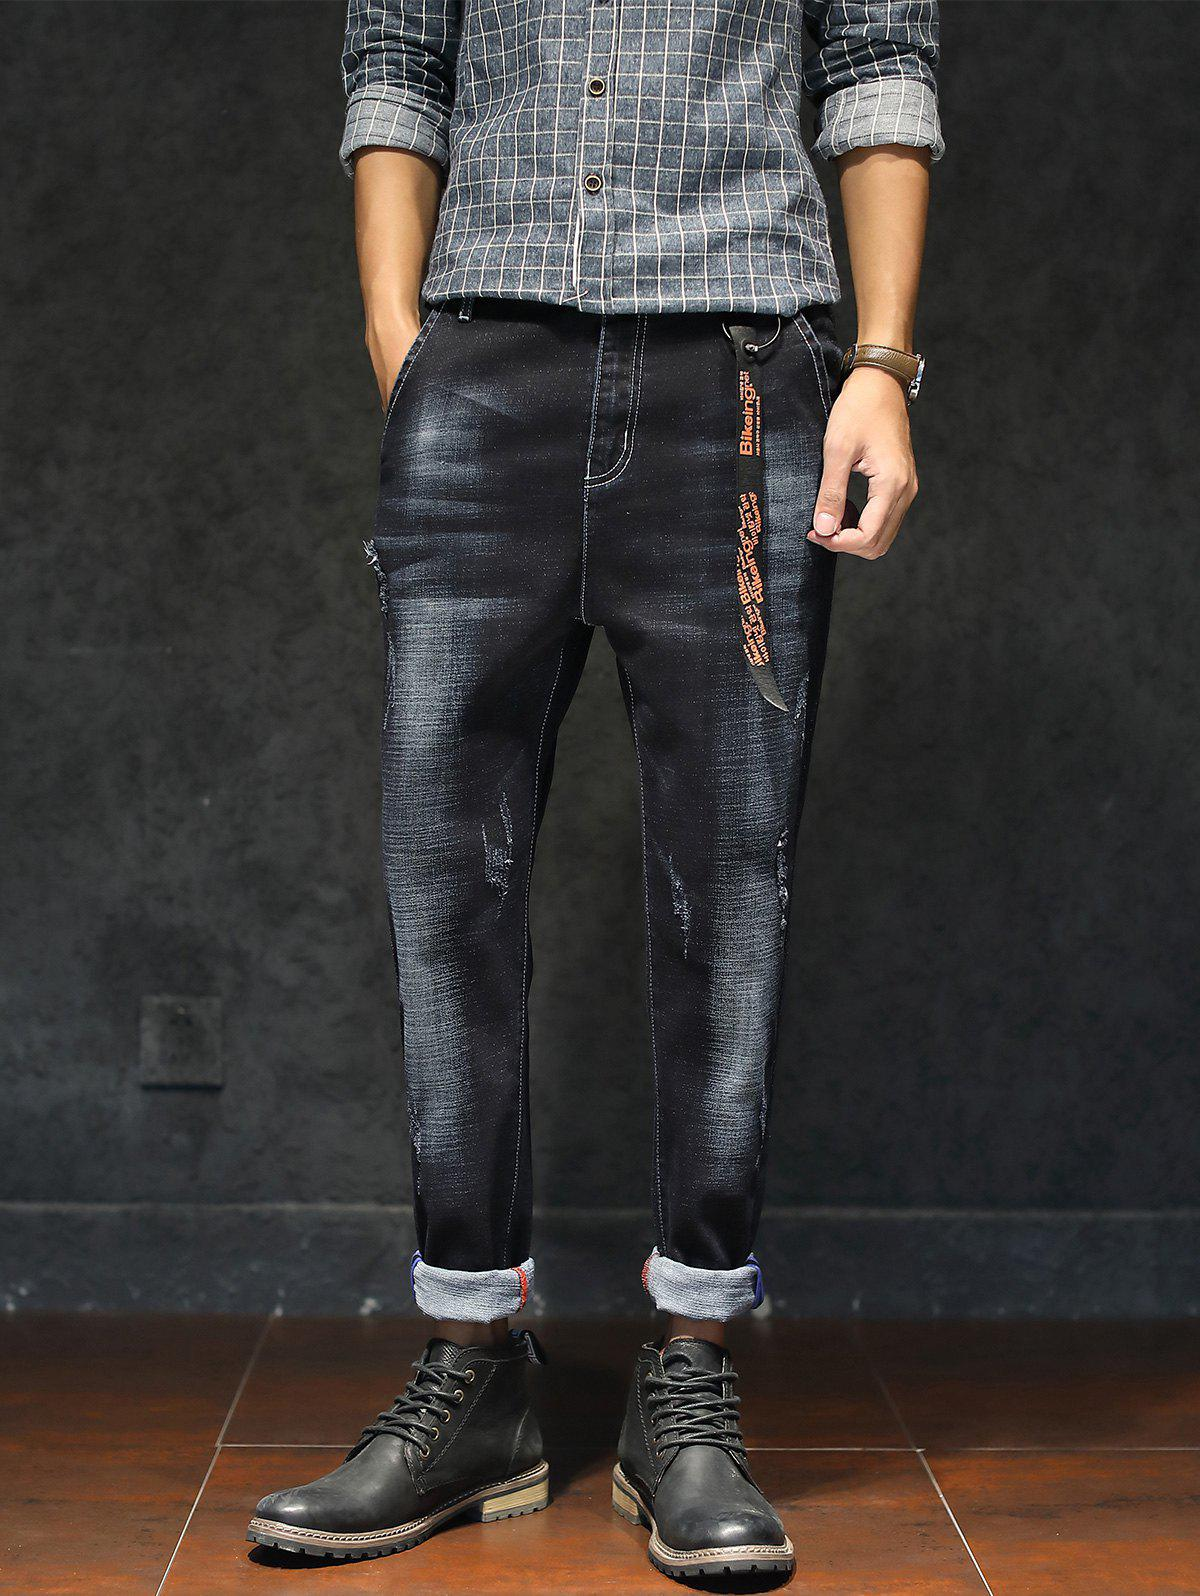 Bleached Braid Embellished Ripped Jeans - BLACK 4XL